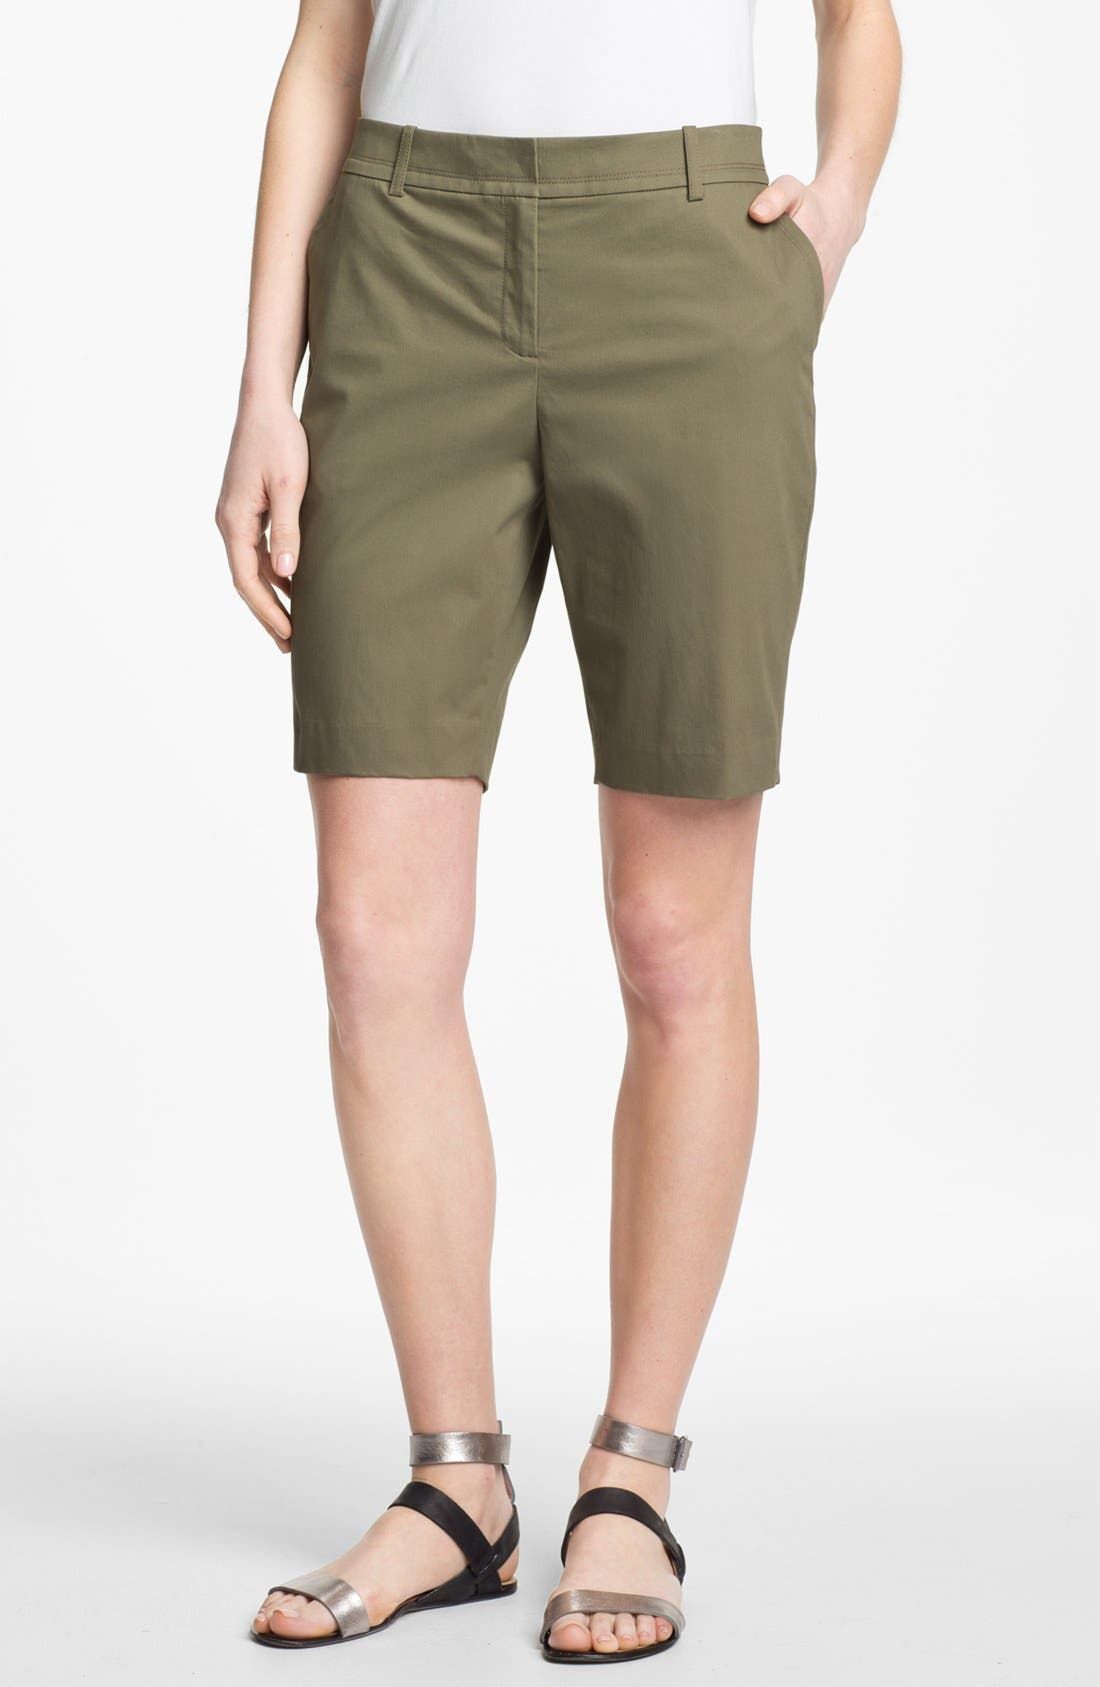 Alternate Image 1 Selected - Lafayette 148 New York Stretch Cotton Bermuda Shorts